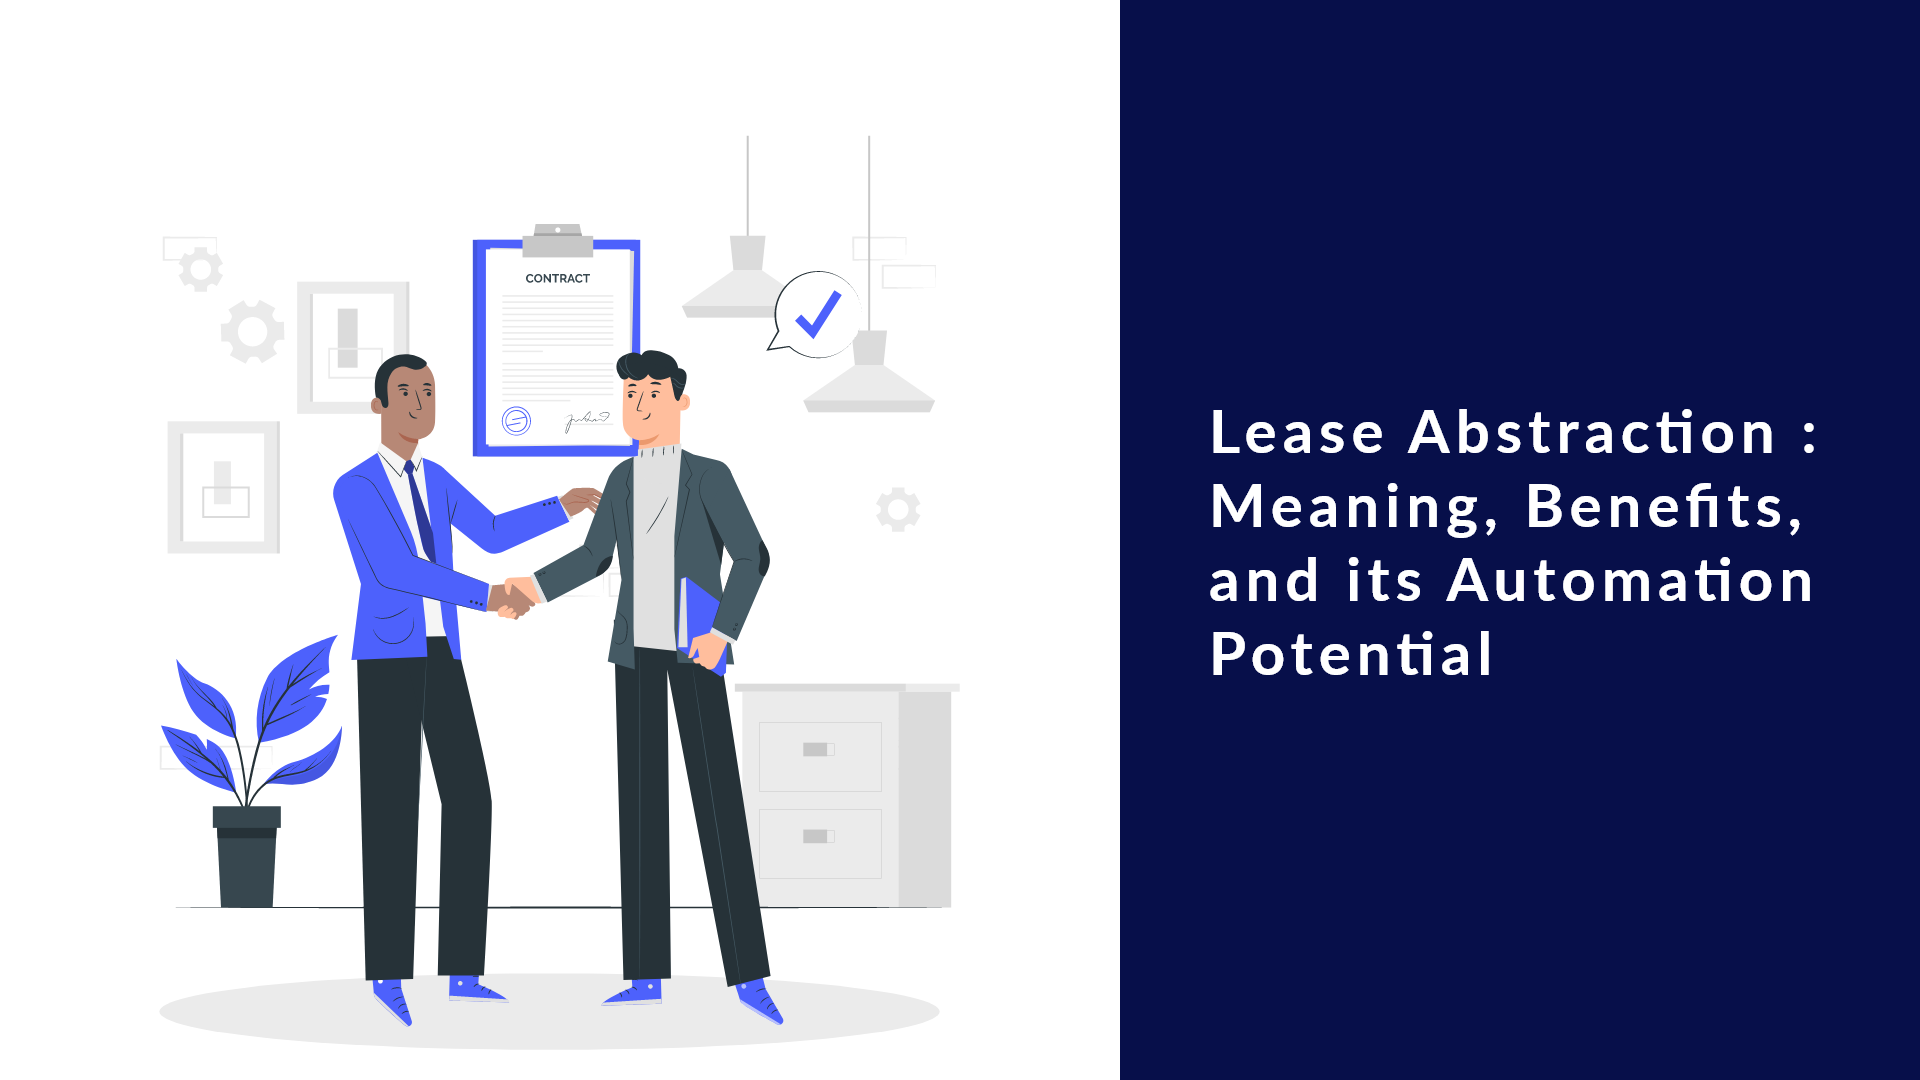 Everything You Need to Know About Lease Abstraction